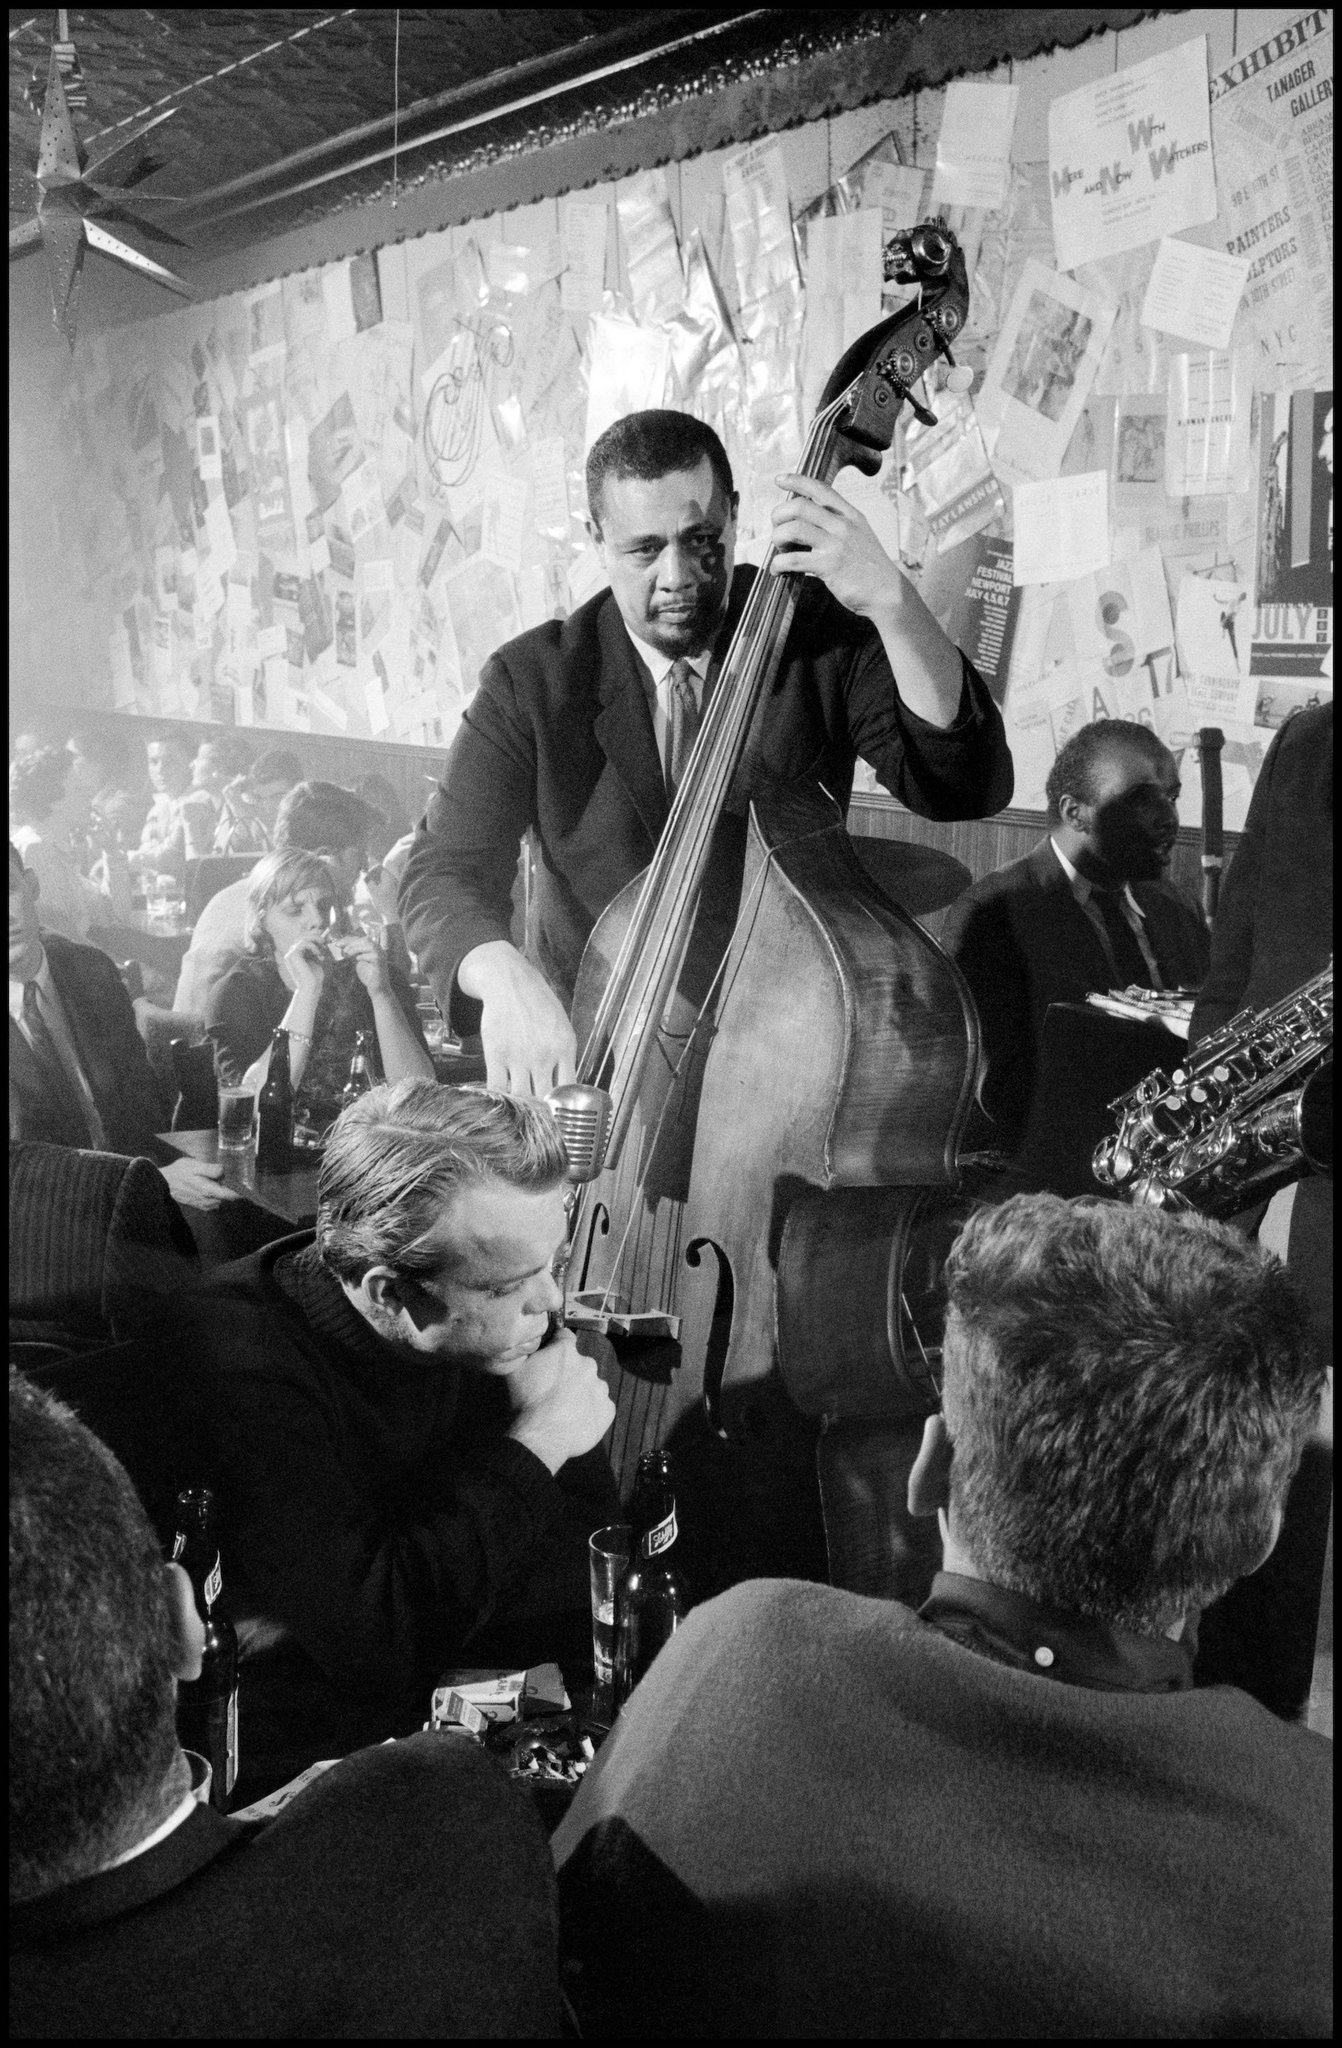 Charles Mingus. USA. 1958.  Today marks 40 years since the American jazz musician passed away on January 5, 1979.  © Dennis Stock/Magnum Photos https://t.co/TNI7JFrz48